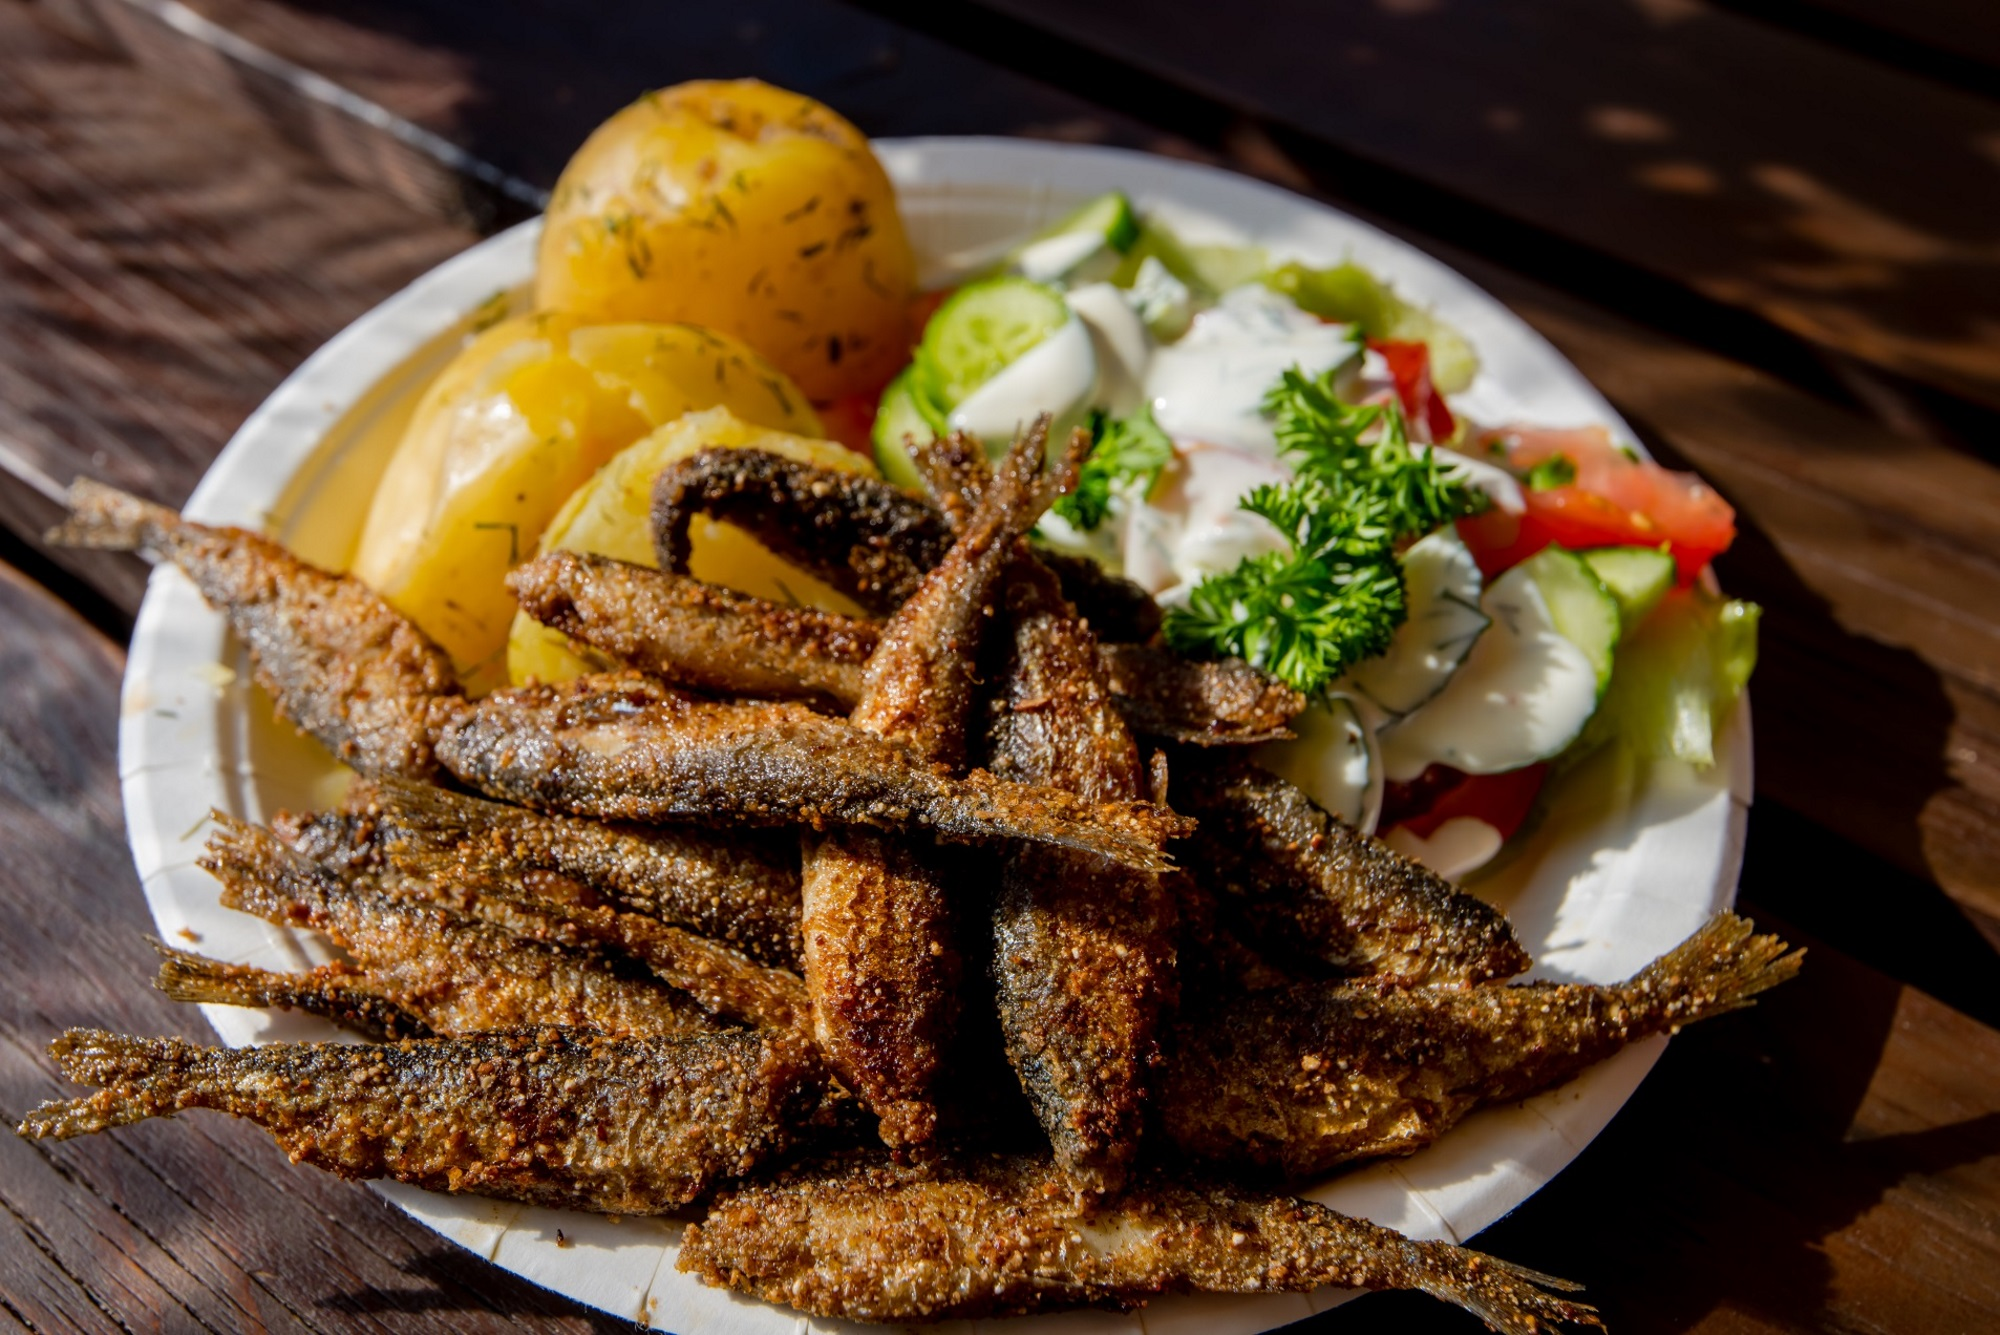 Finland Travel - Finnish fast food, fried vendace | Visit Saimaa ...